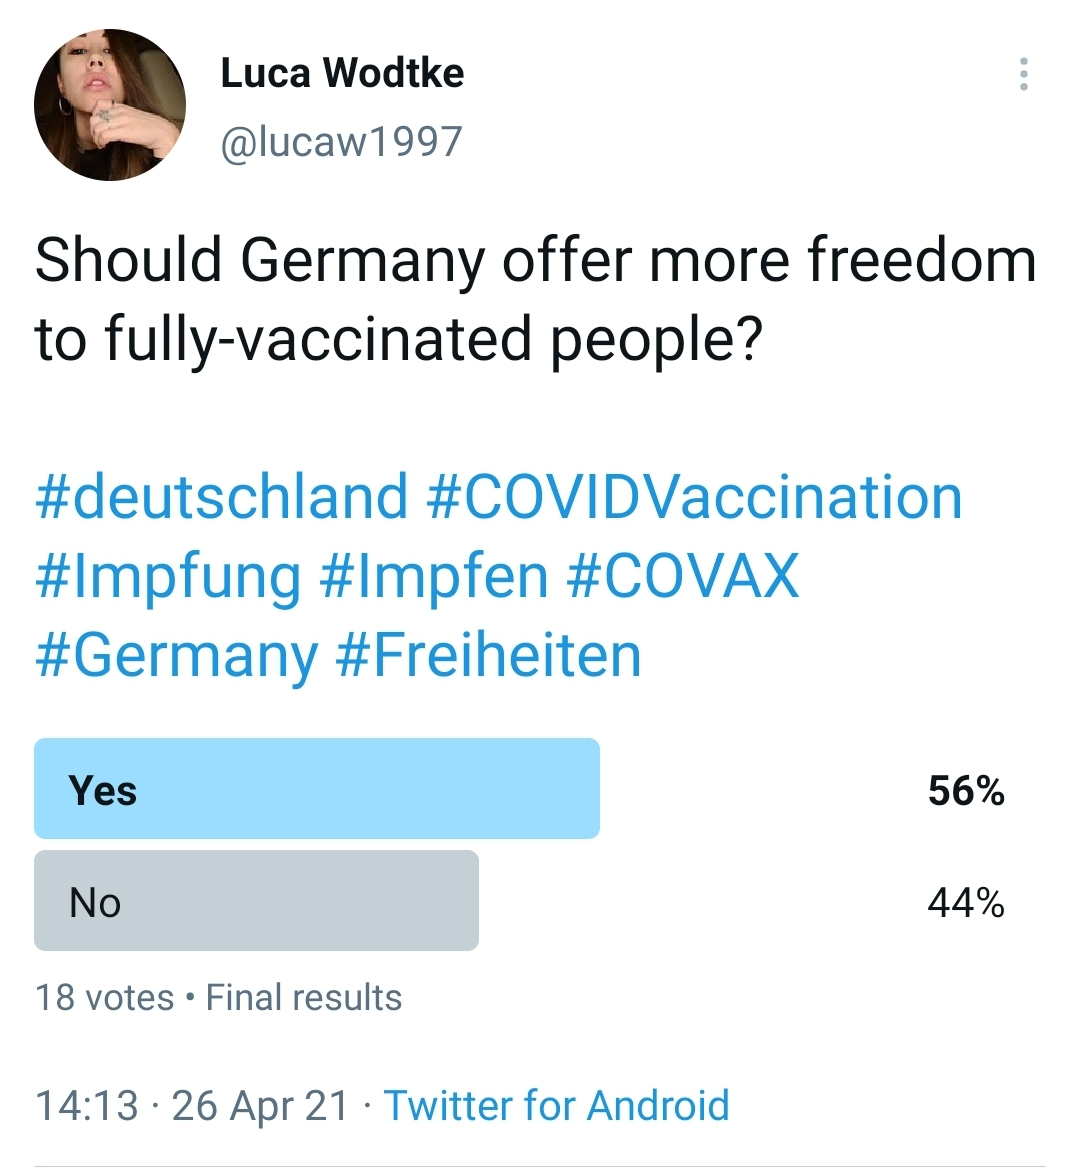 A questionnaire on Twitter showing that 56% voted that fully-vaccinated poeple should receive more freedom